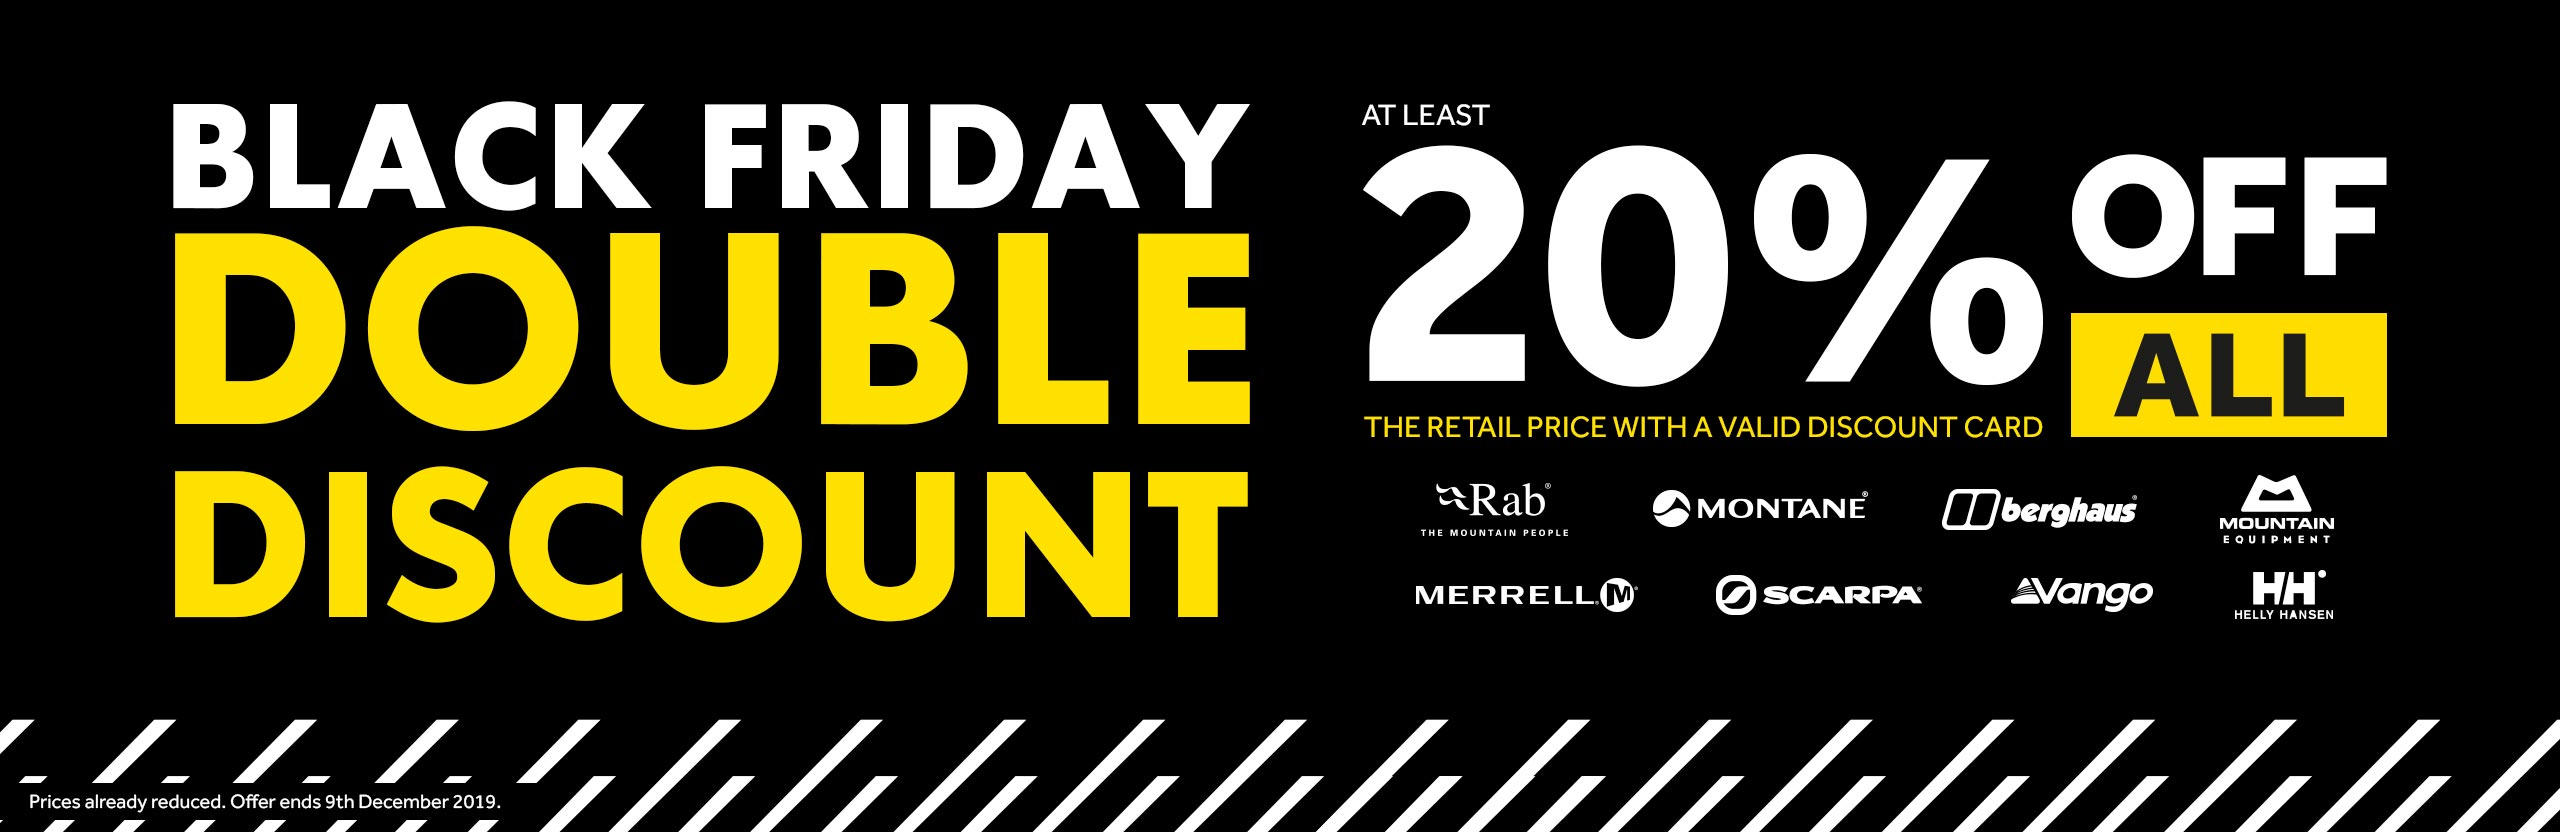 Double Discount - At least 20% Off Rab, Montane, Berghaus, Mountain Equipment, Merrell, Scarpa, Vango, Helly Hansen